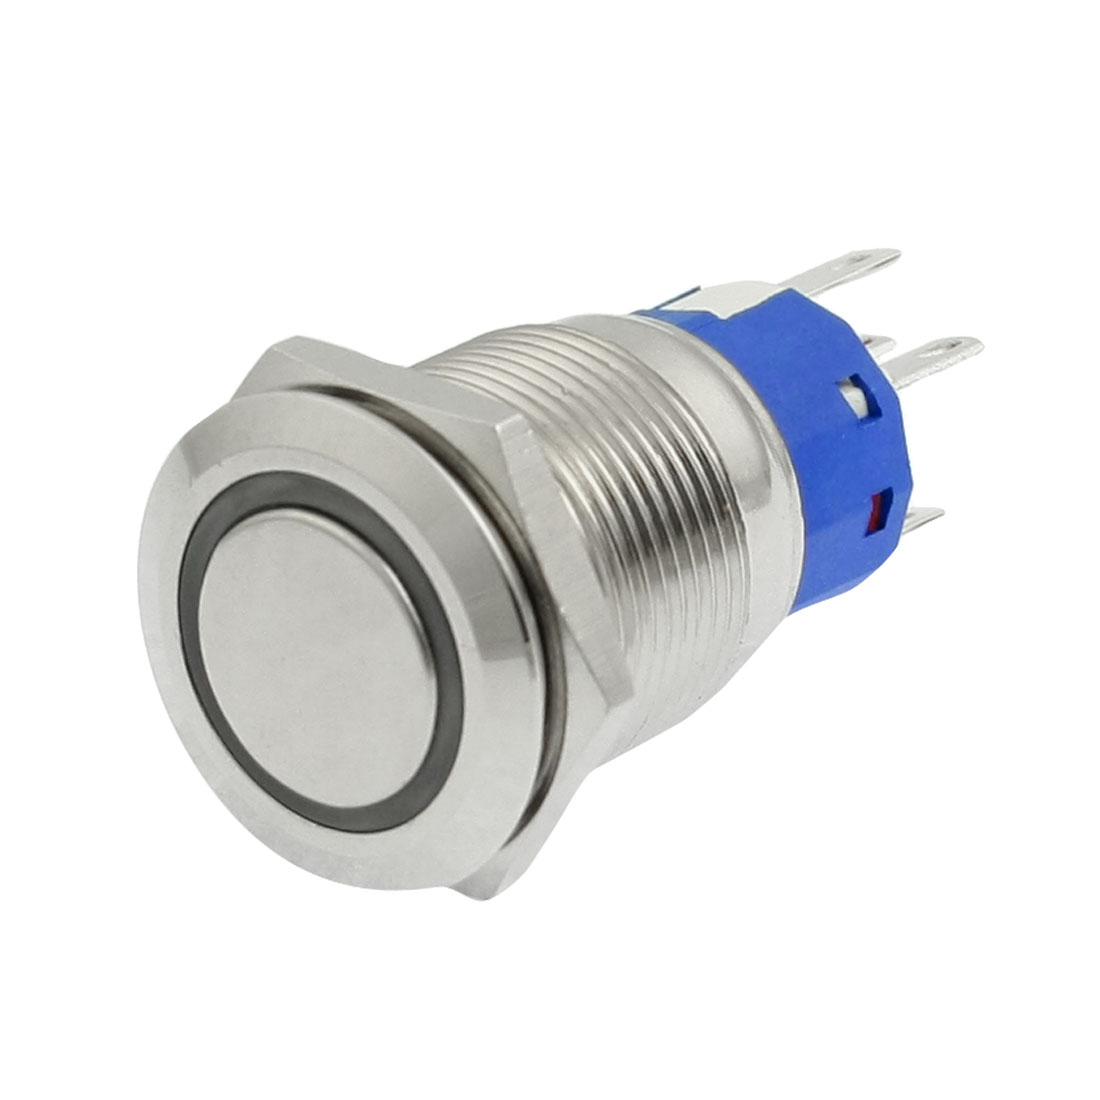 DC 24V Red LED Light 19mm SPDT Stainless Steel Momentary Round Pushbutton Switch